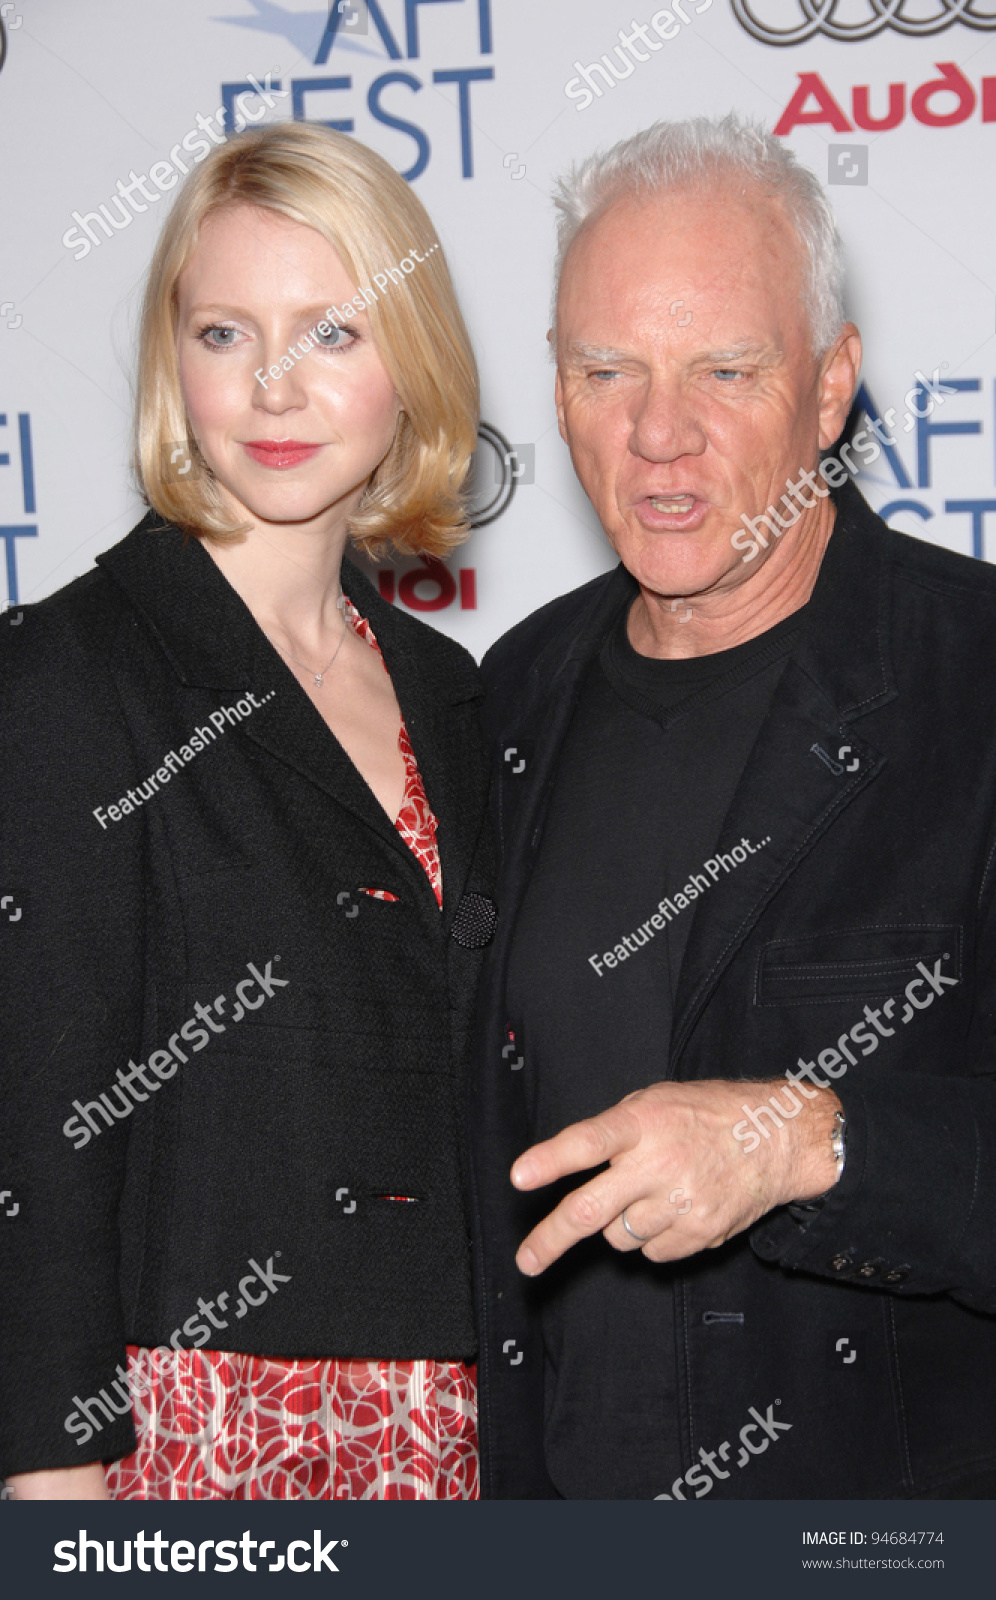 Malcolm mcdowell daughter lilly mcdowell at the afi gala premiere of southland tales